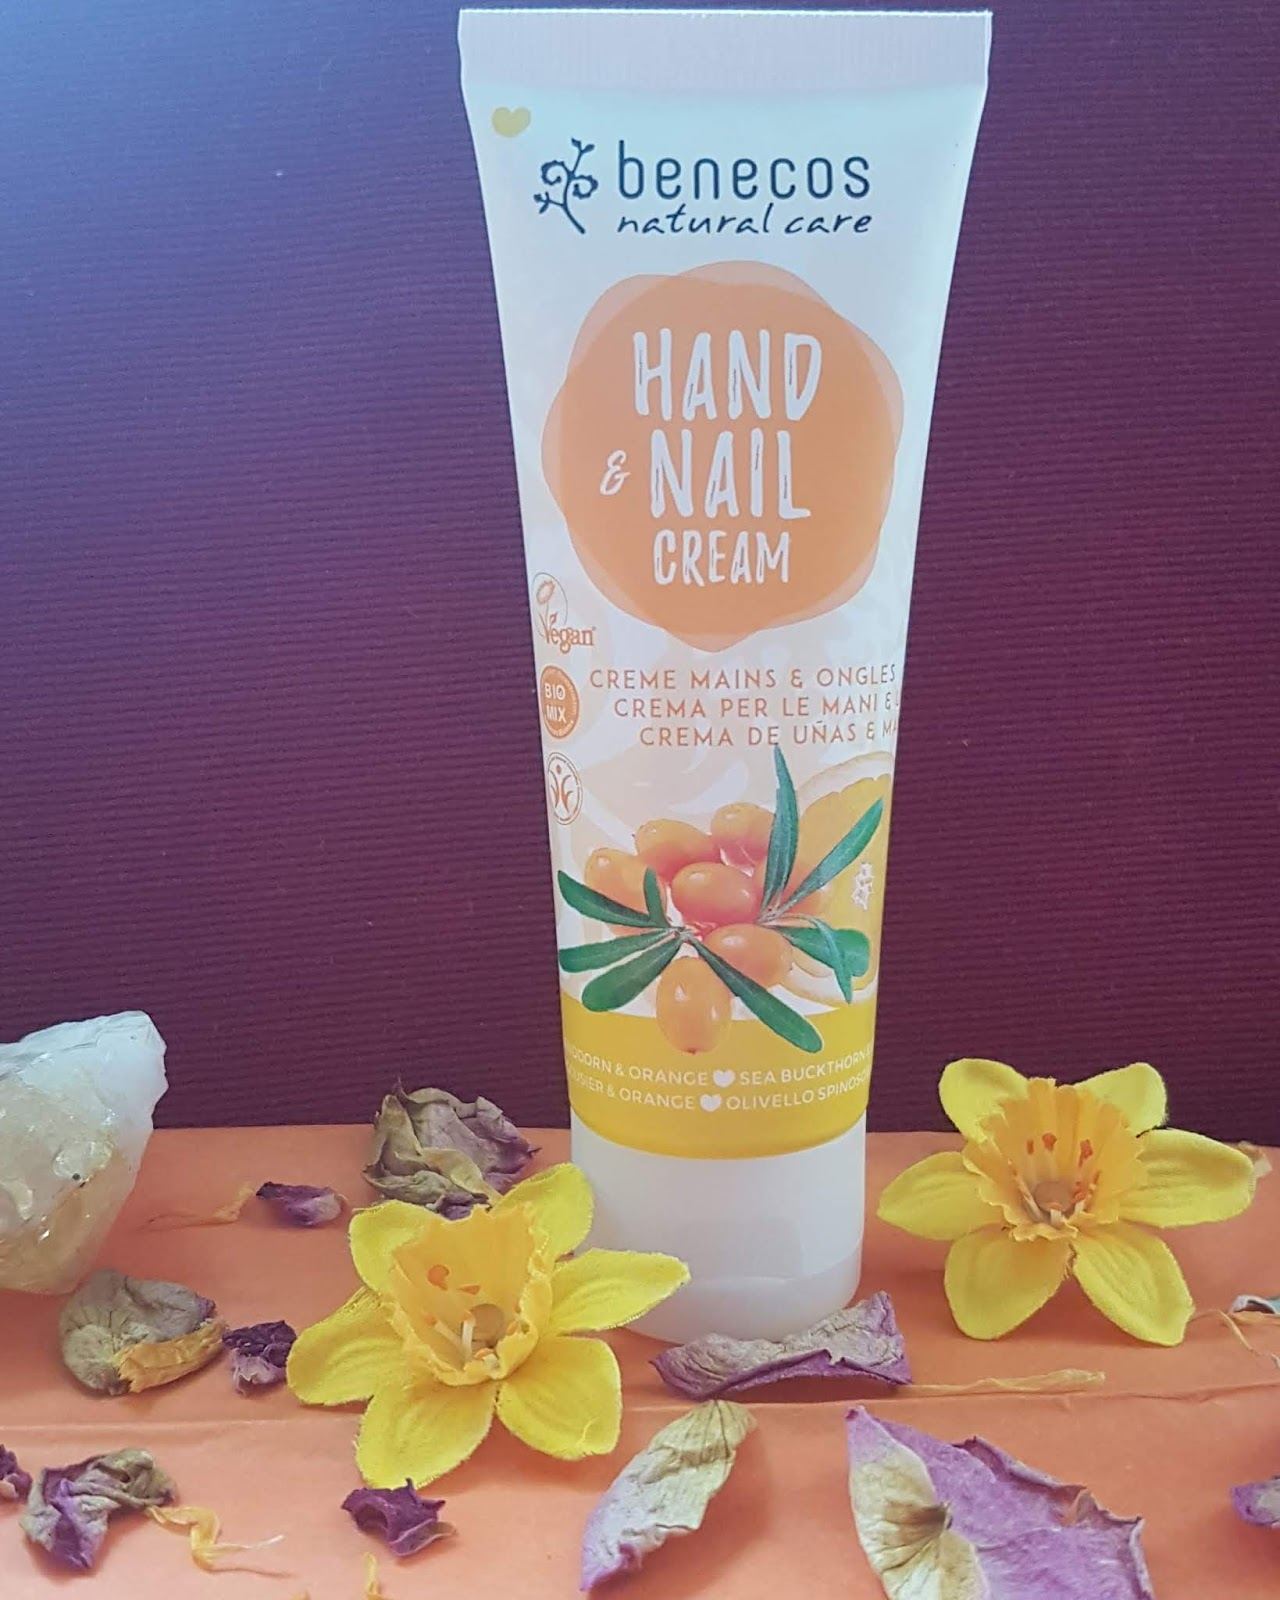 The Natural Beauty Box Review - Benecos Sea Buckthorn & Orange Hand & Nail Cream